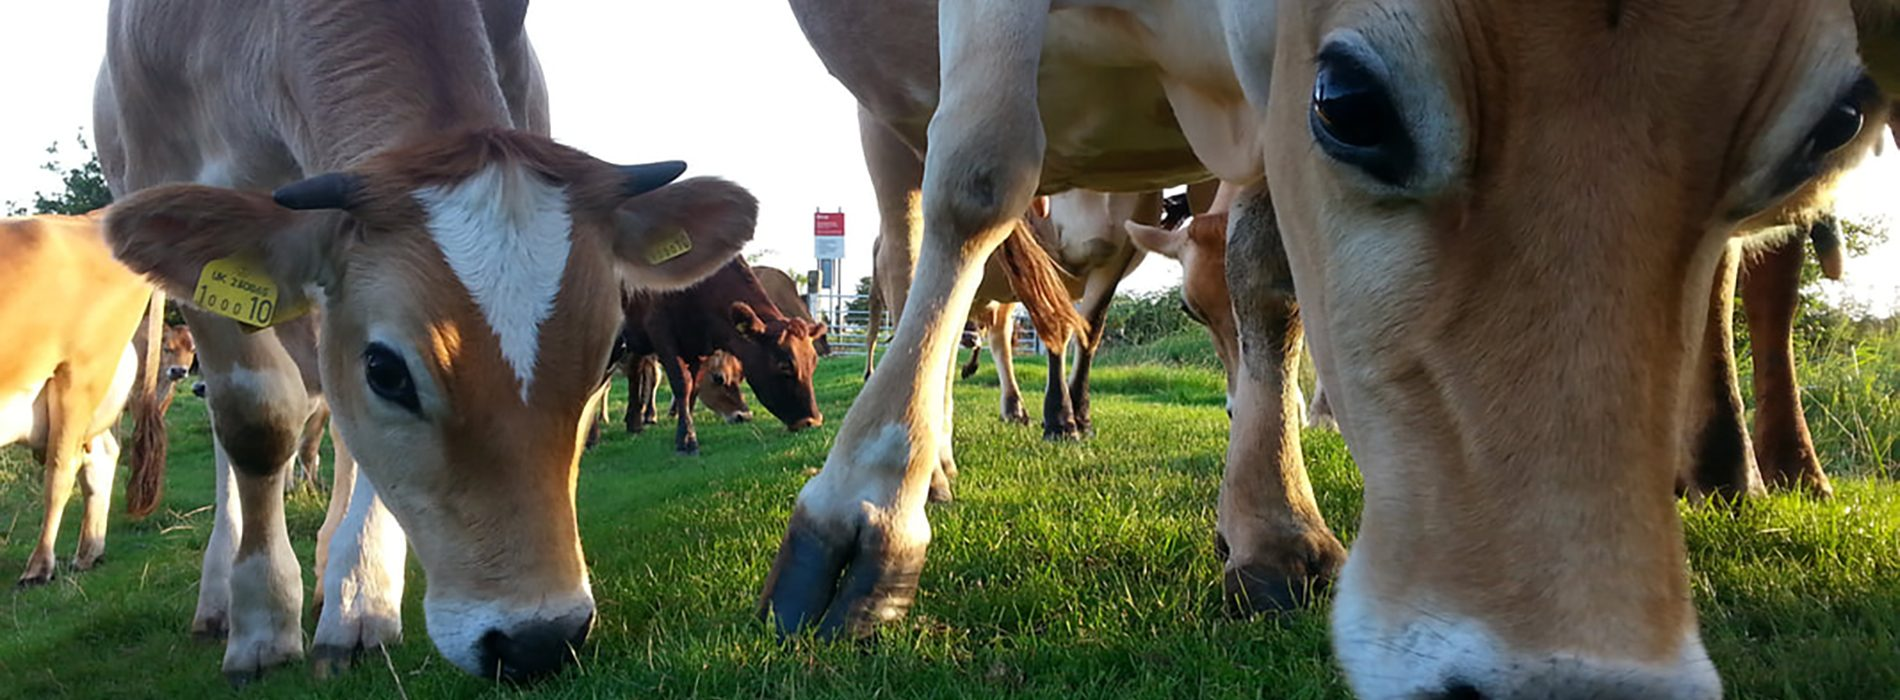 Image of grass-fed dairy cow and calf at foot